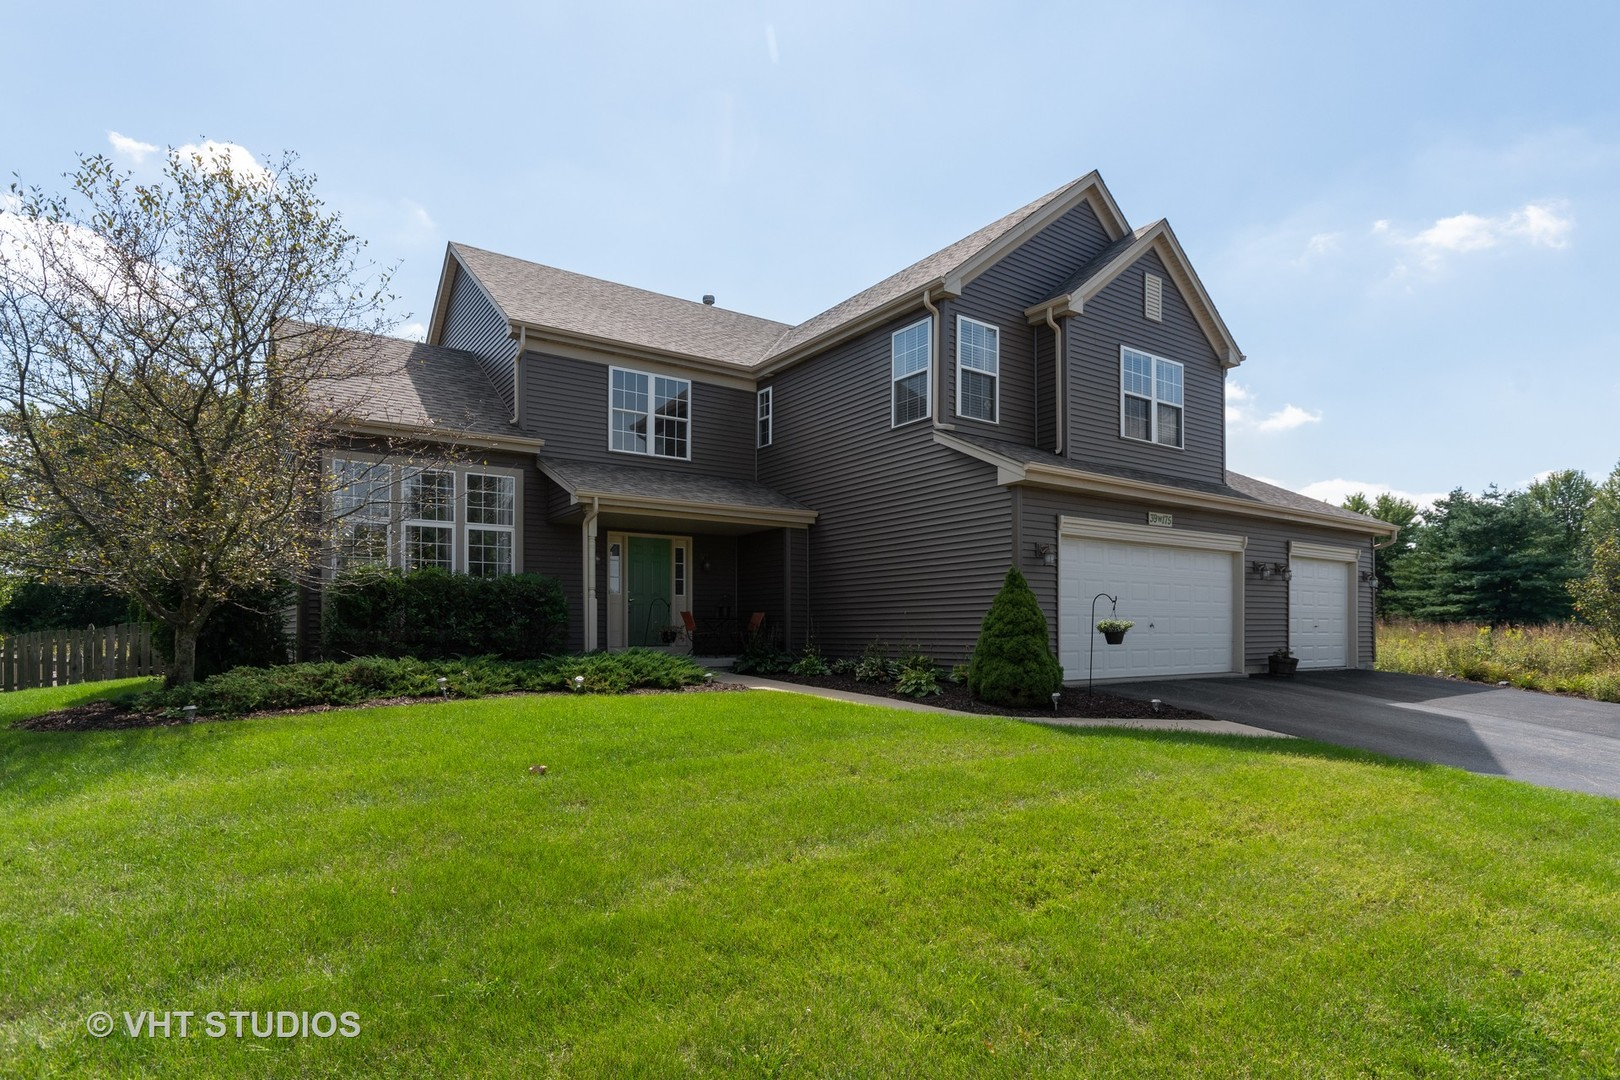 Photo of 39W175 South Hyde Park S, GENEVA, IL 60134 (MLS # 10514890)